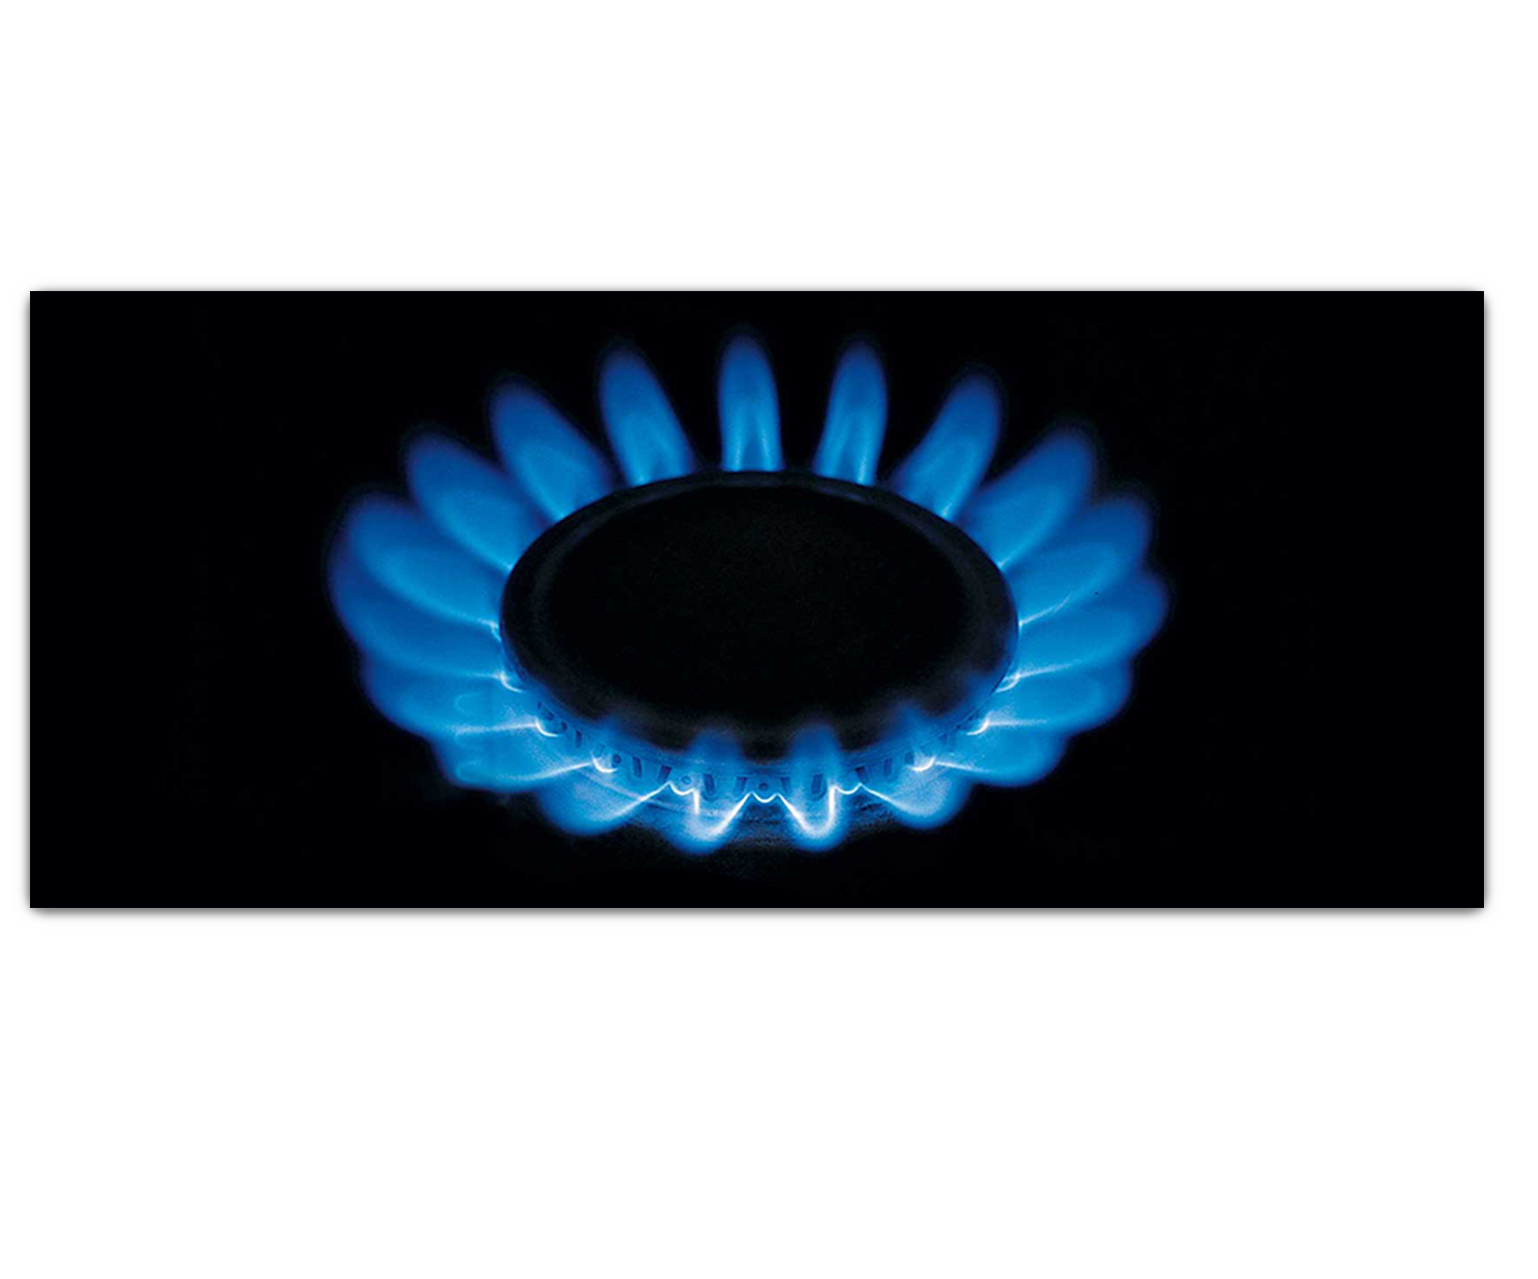 drop-shadow_0002_Blue-Flame-Propane.png